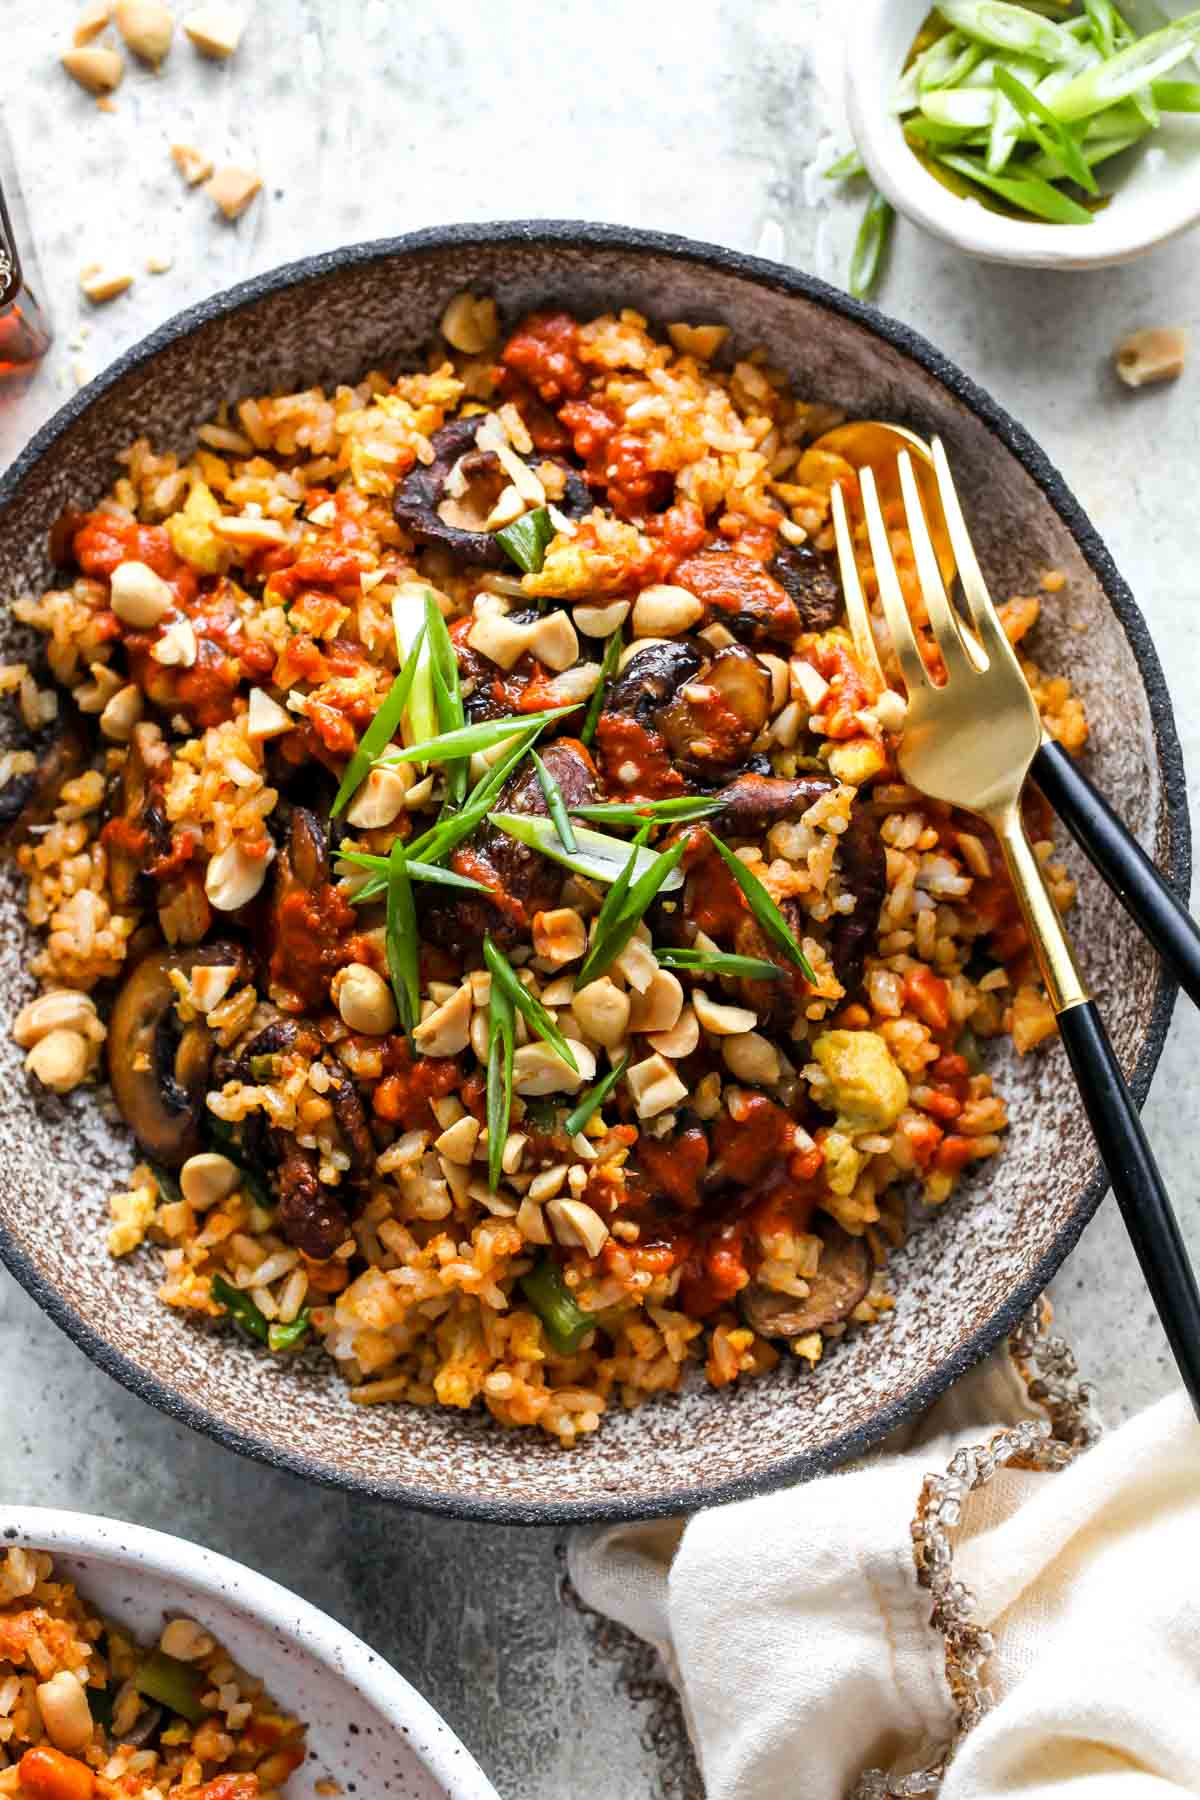 Mushroom Fried Rice topped with peanuts and green onion